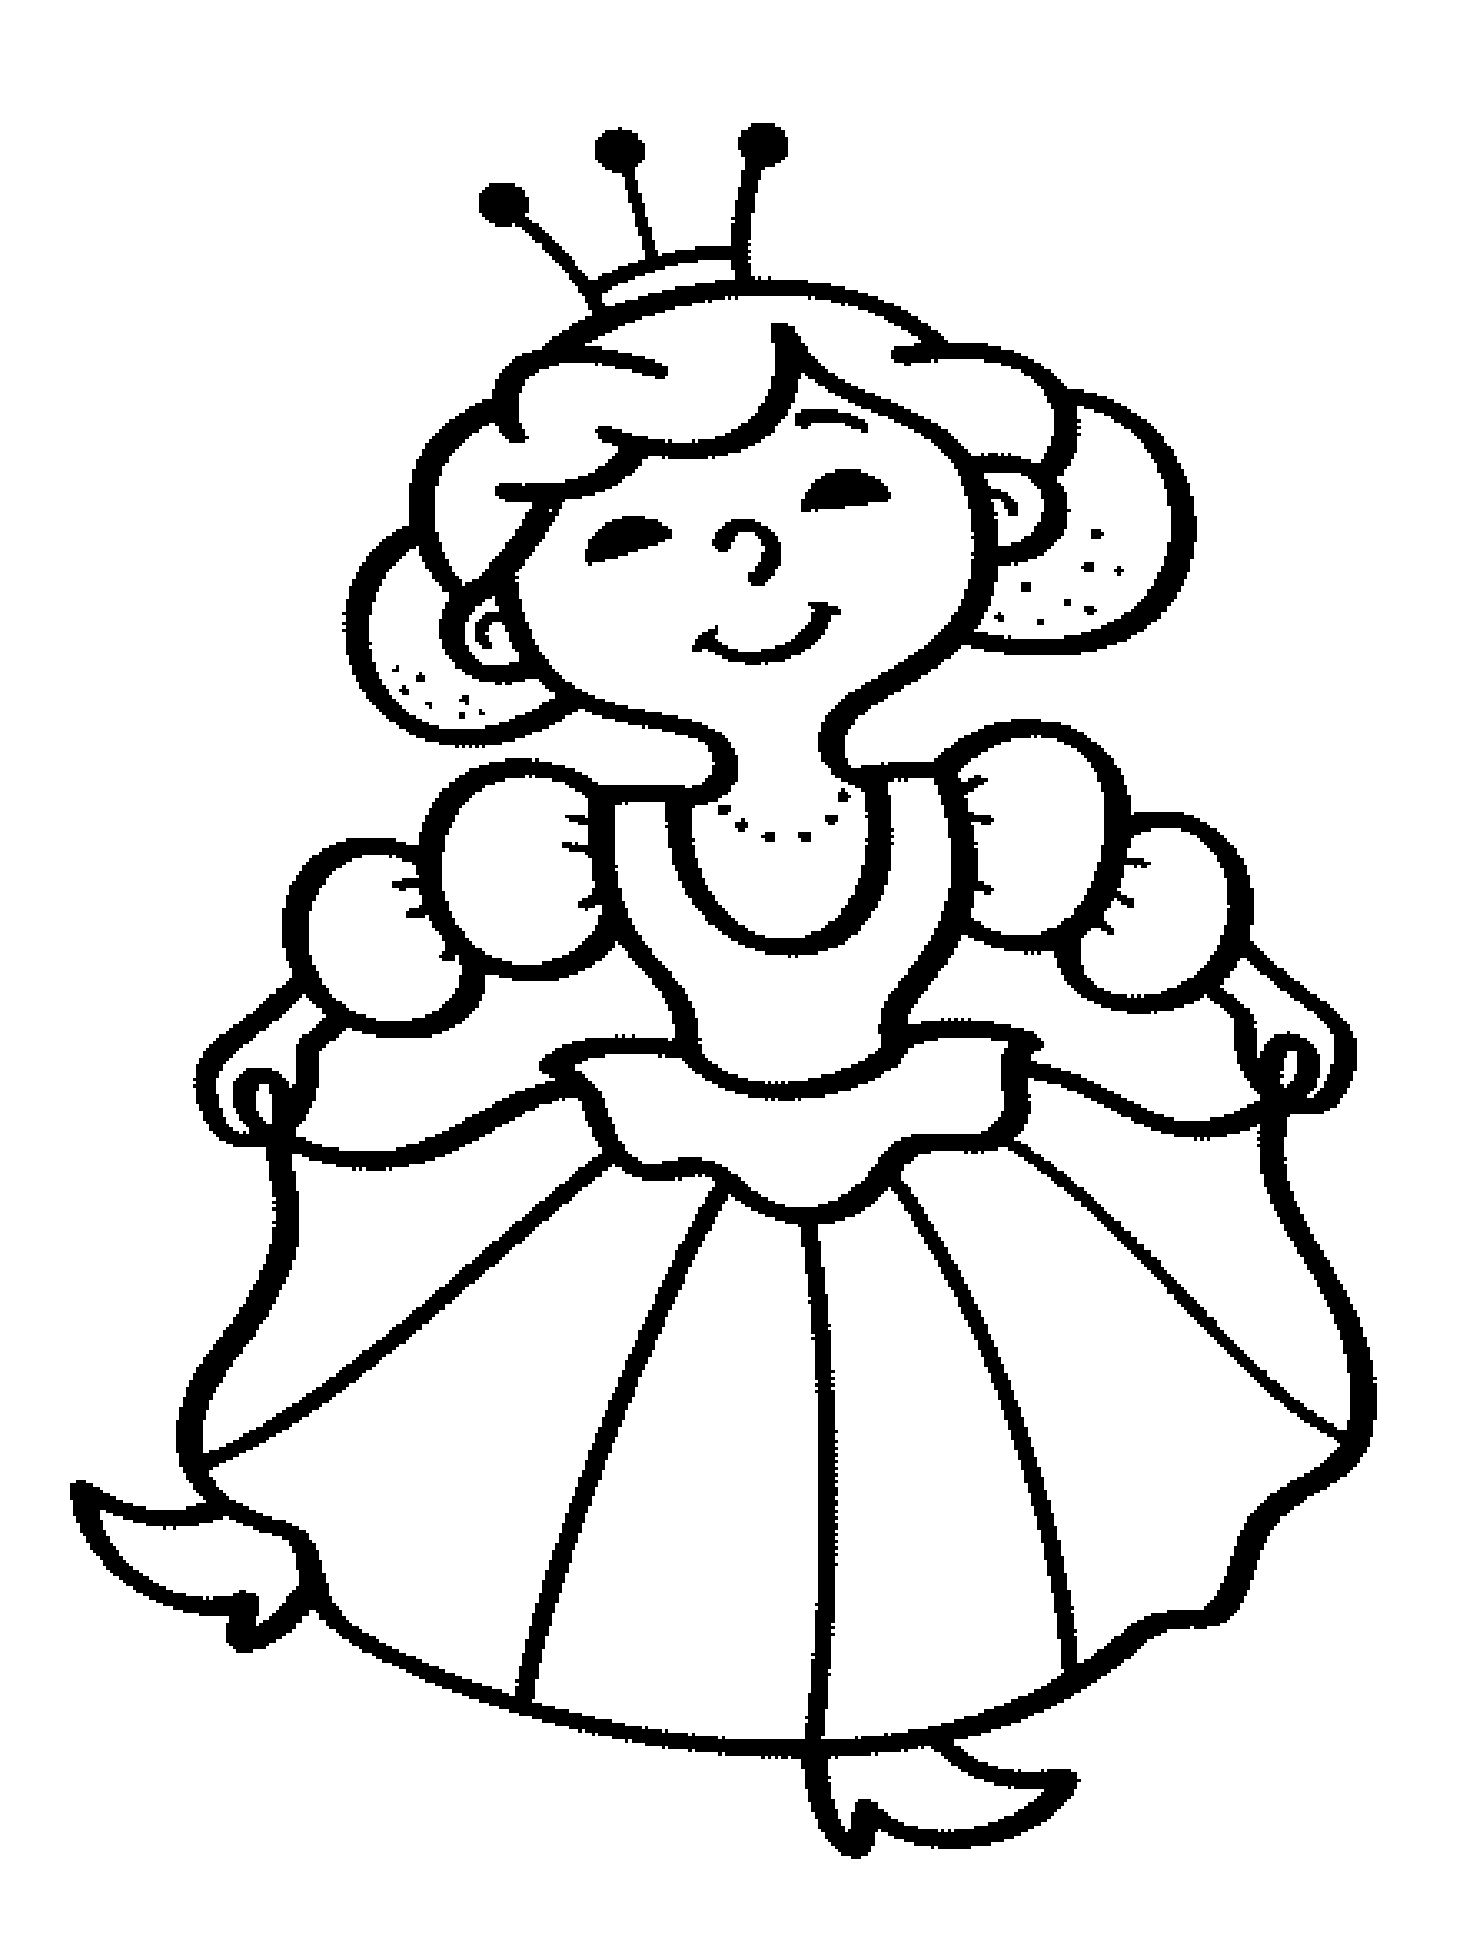 Queen 106320 Characters Printable Coloring Pages